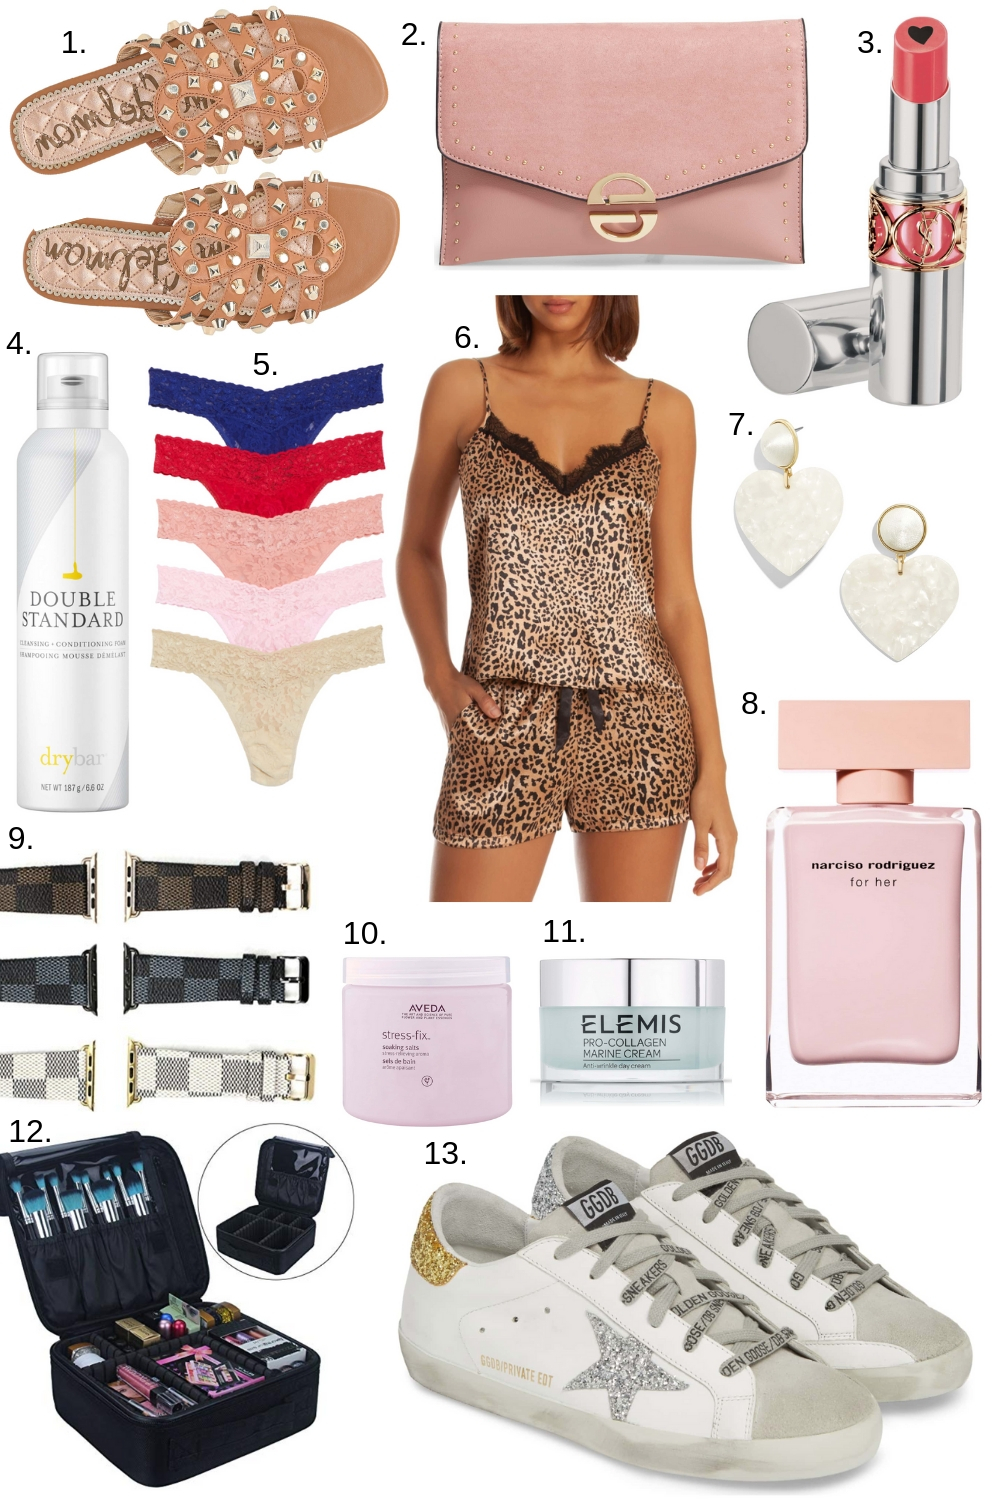 Valentine's Day Gift Guide for Him and Her!